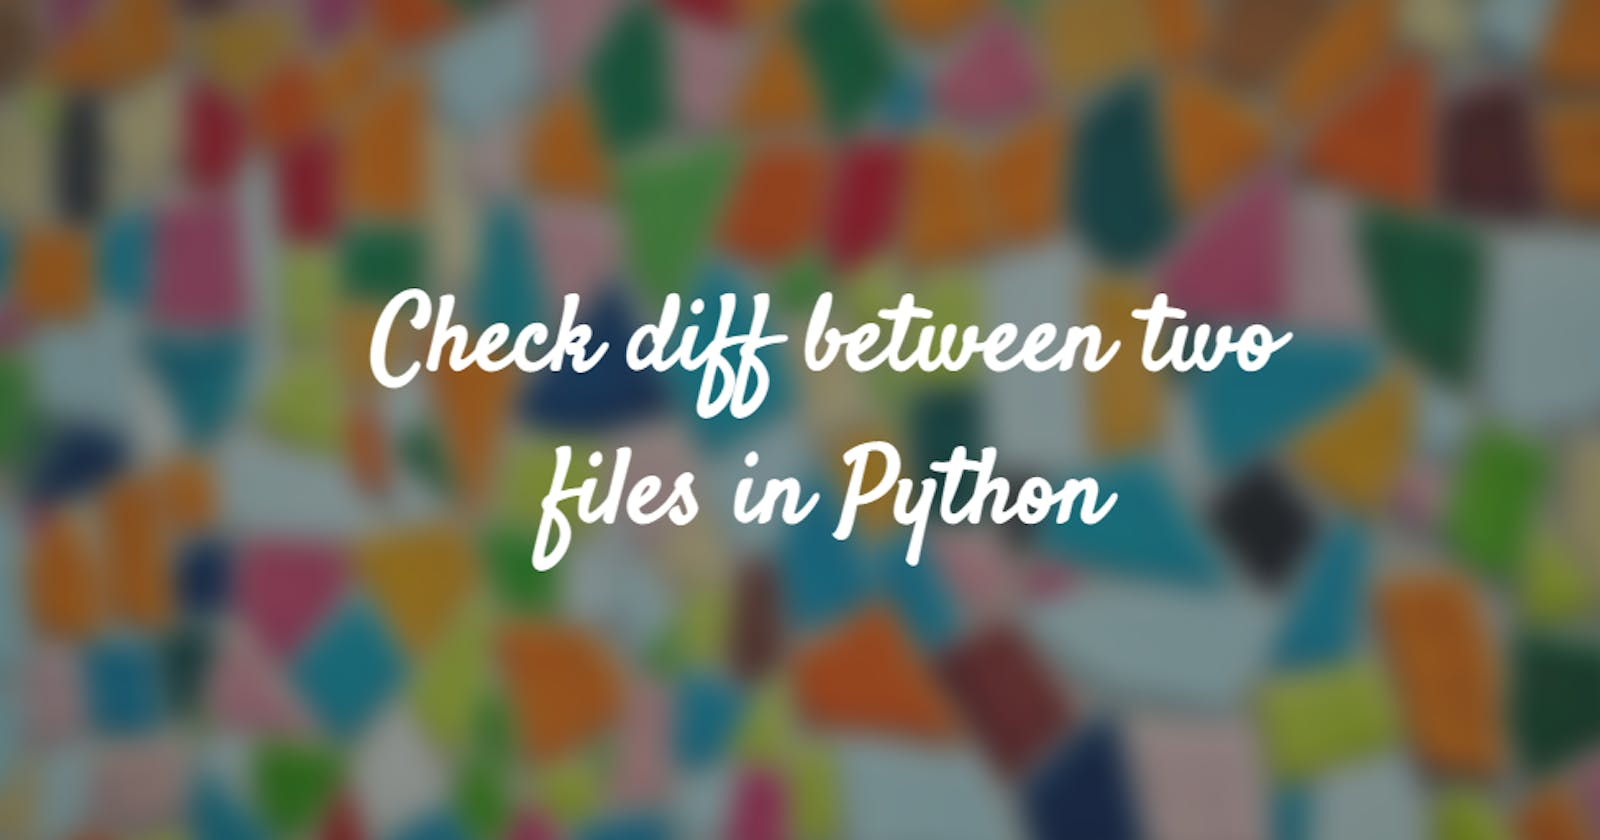 Check diff between two files in Python